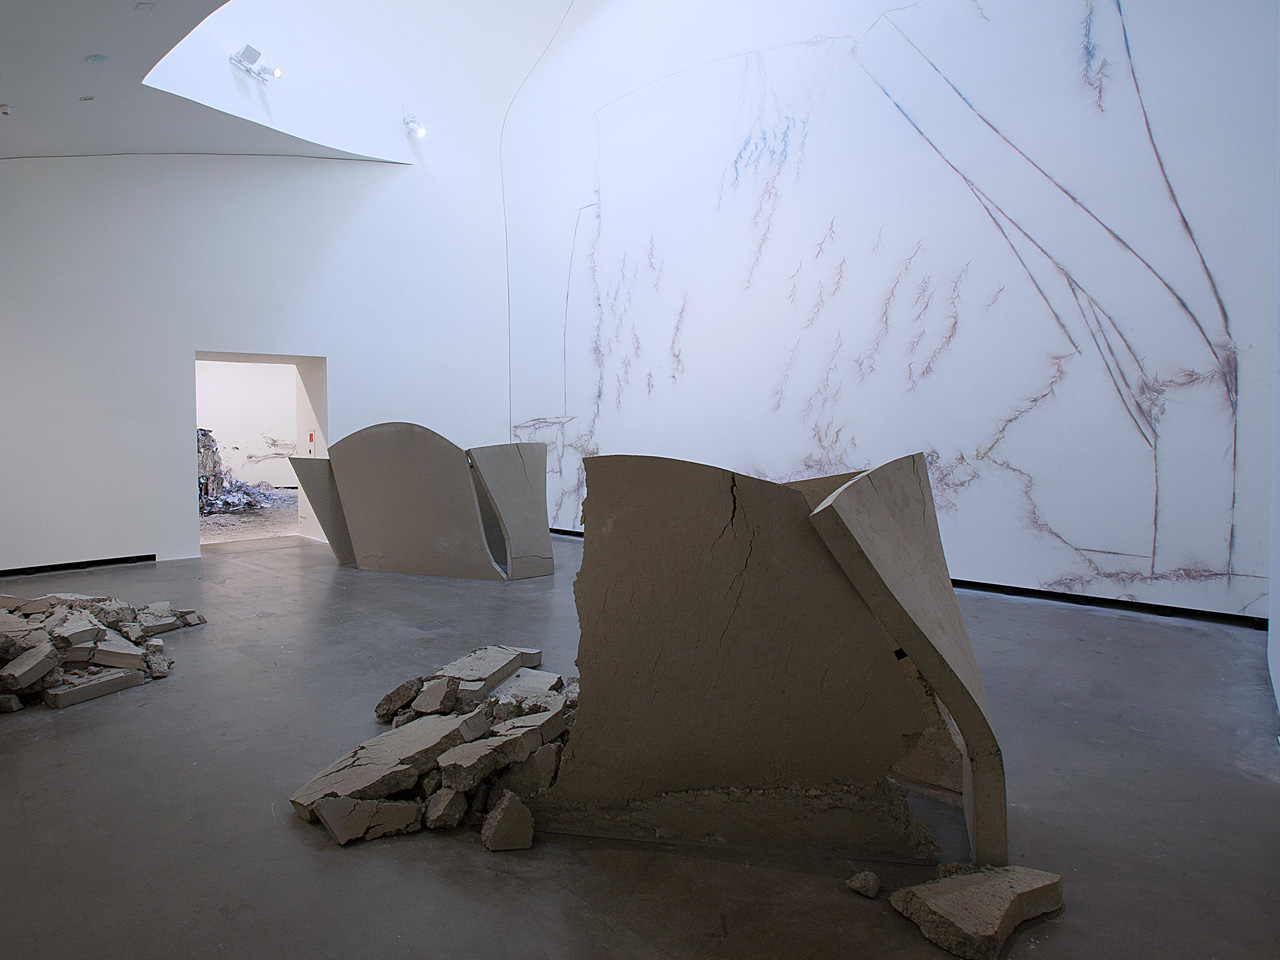 Installation view: Bizarre Spaces – Attacks, Transformations, Explosions, Marta Herford, Herford, Germany |  | ProjecteSD